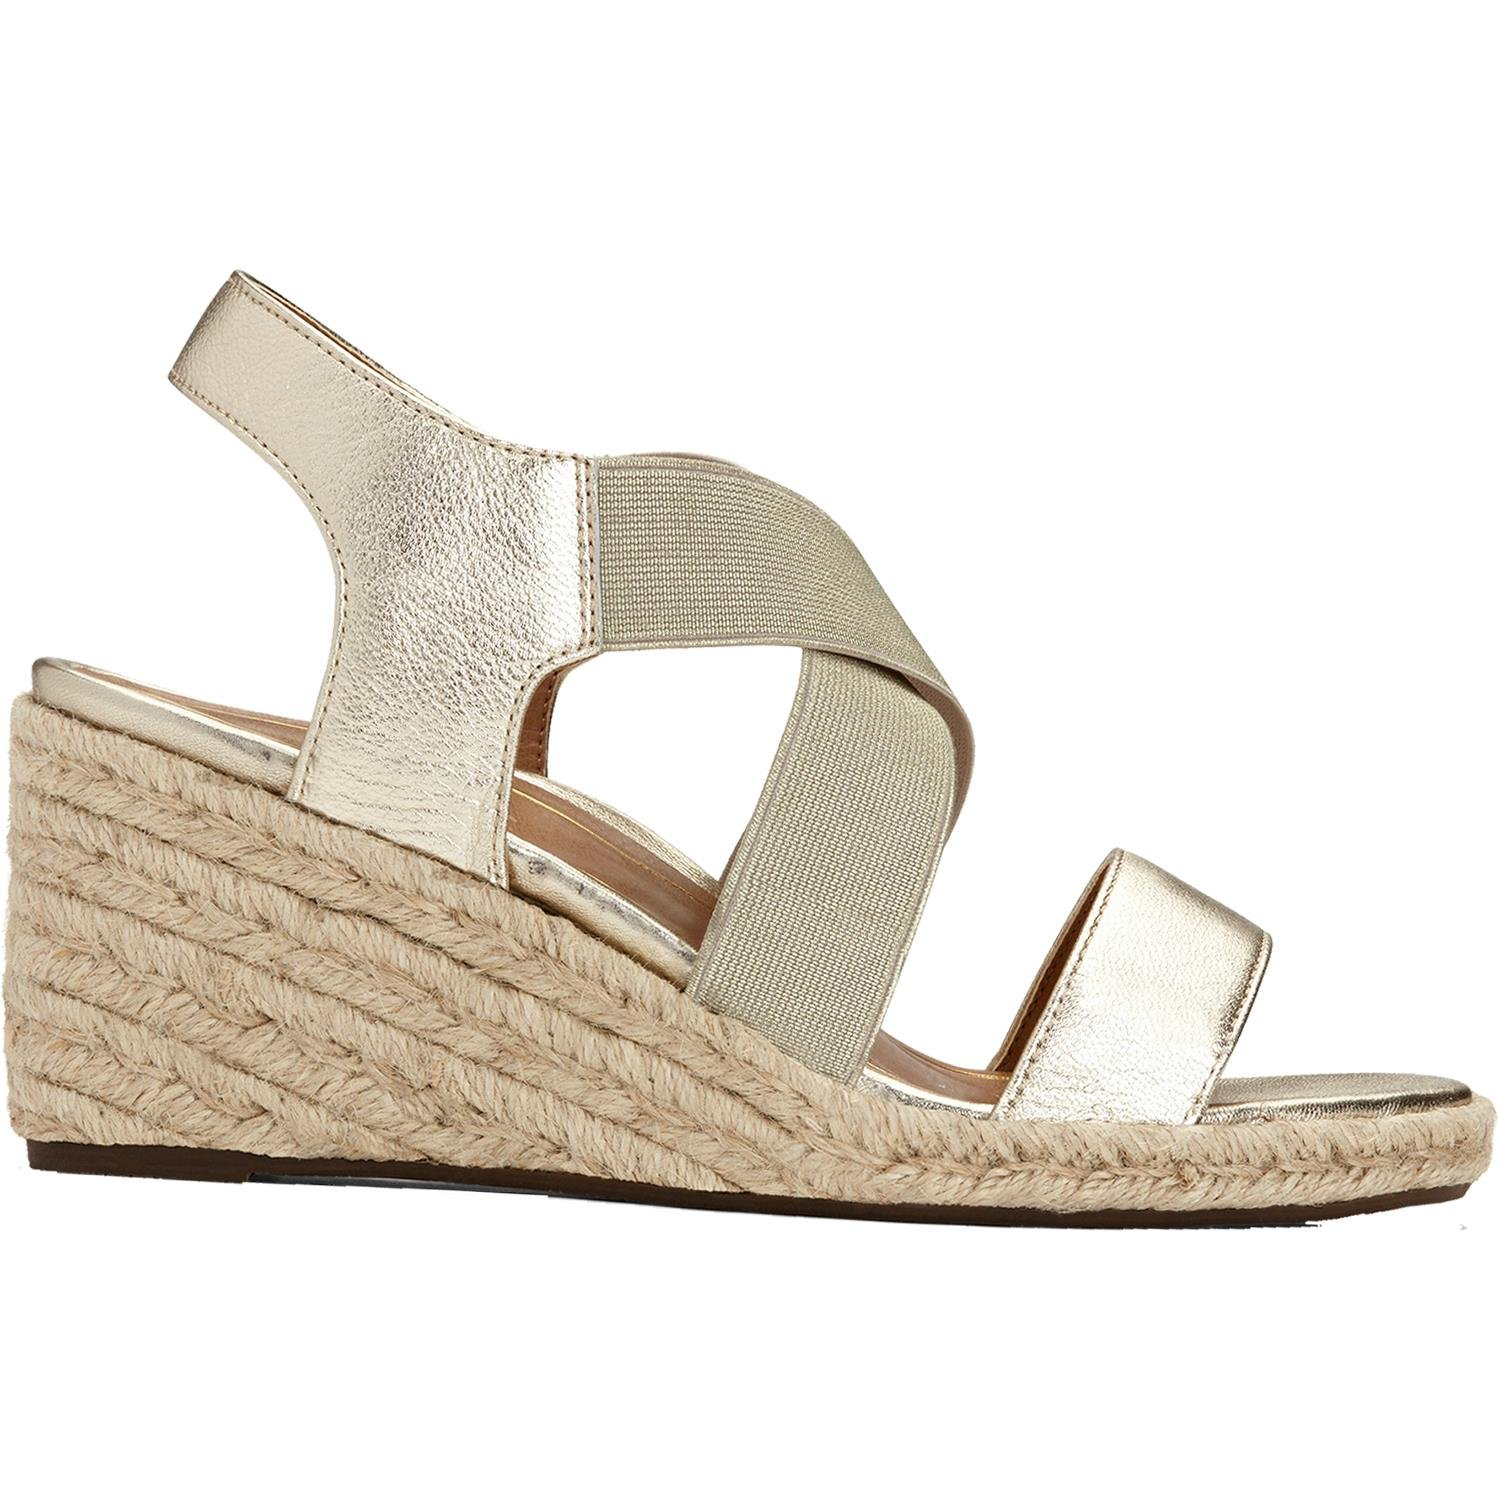 Vionic Tulum Ainsleigh - Womens Wedge Sandal Champagne - 8.5 Wide